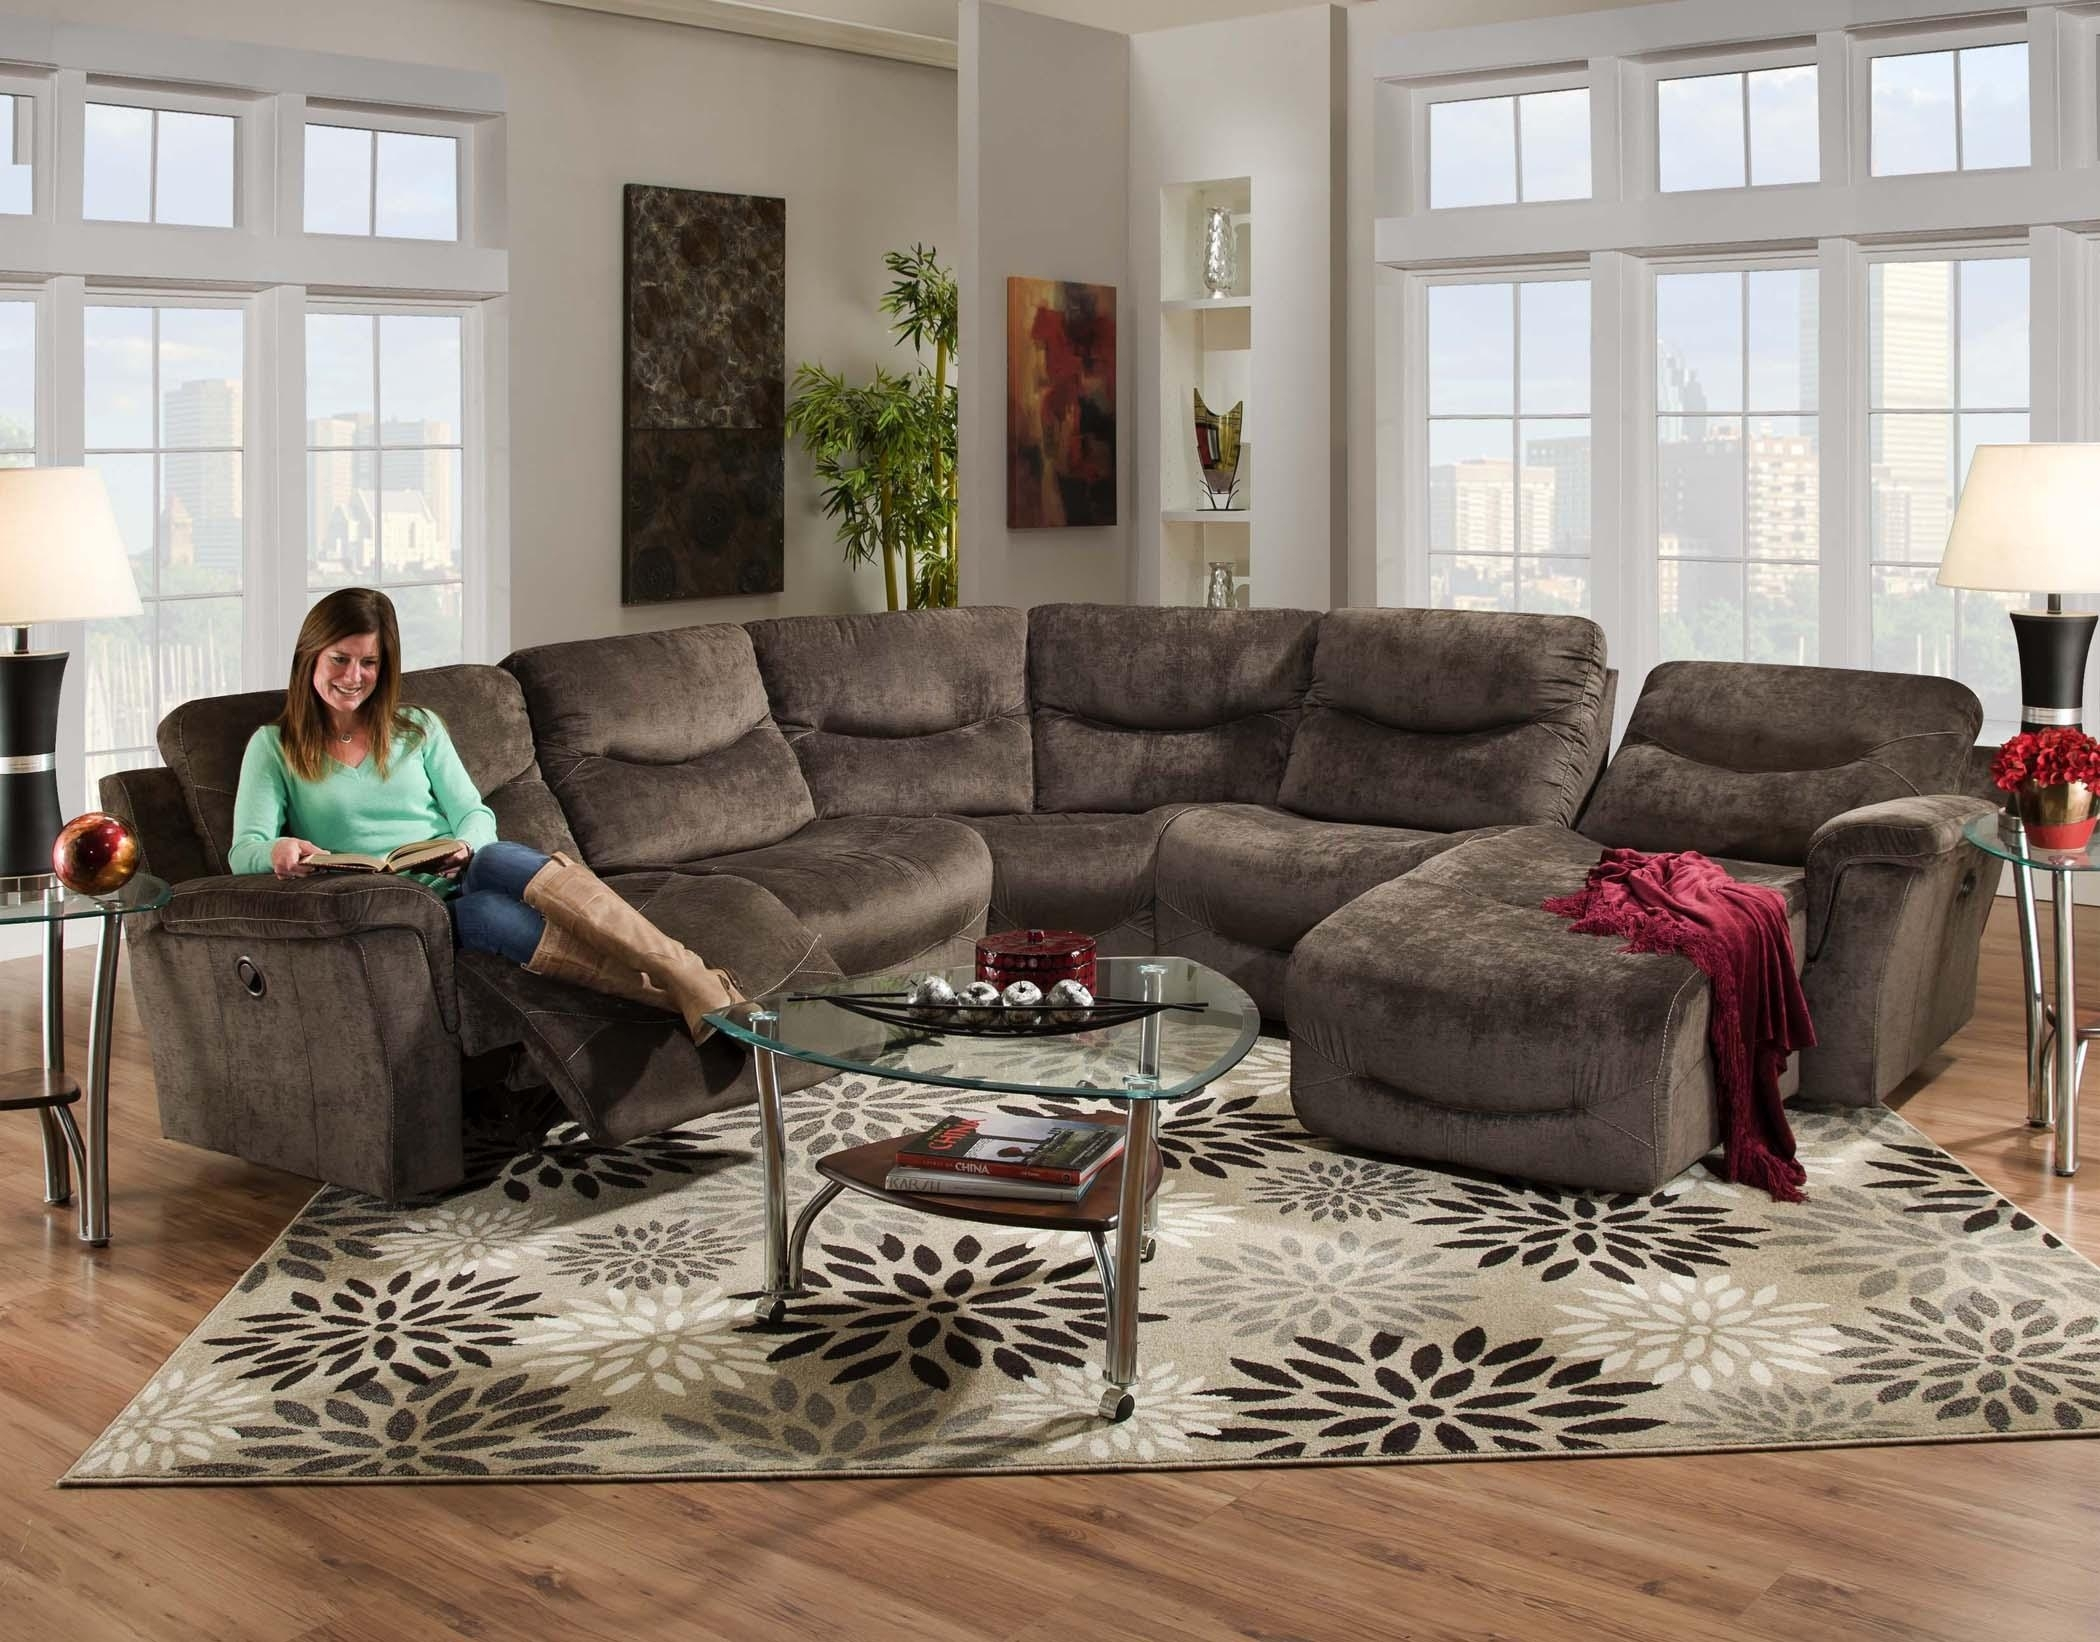 Franklin Furniture: Milano Collection Sectional Sofa Without With Harrisburg Pa Sectional Sofas (View 4 of 10)